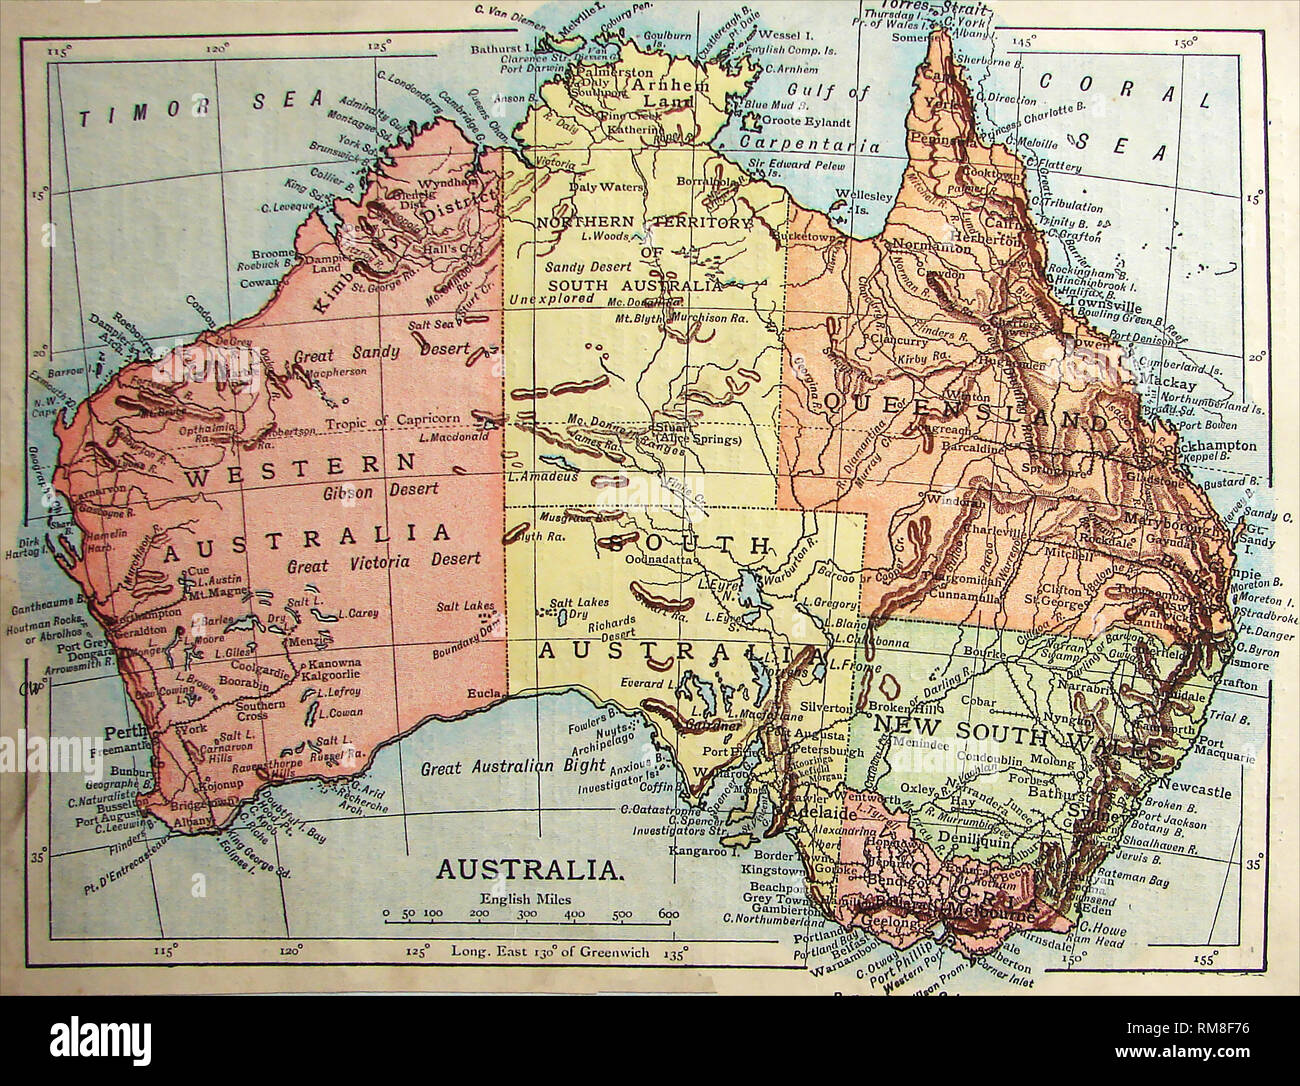 Map Of Australia 1901.Coloured Map Of Australia 1901 Showing Unexplored Regions Stock